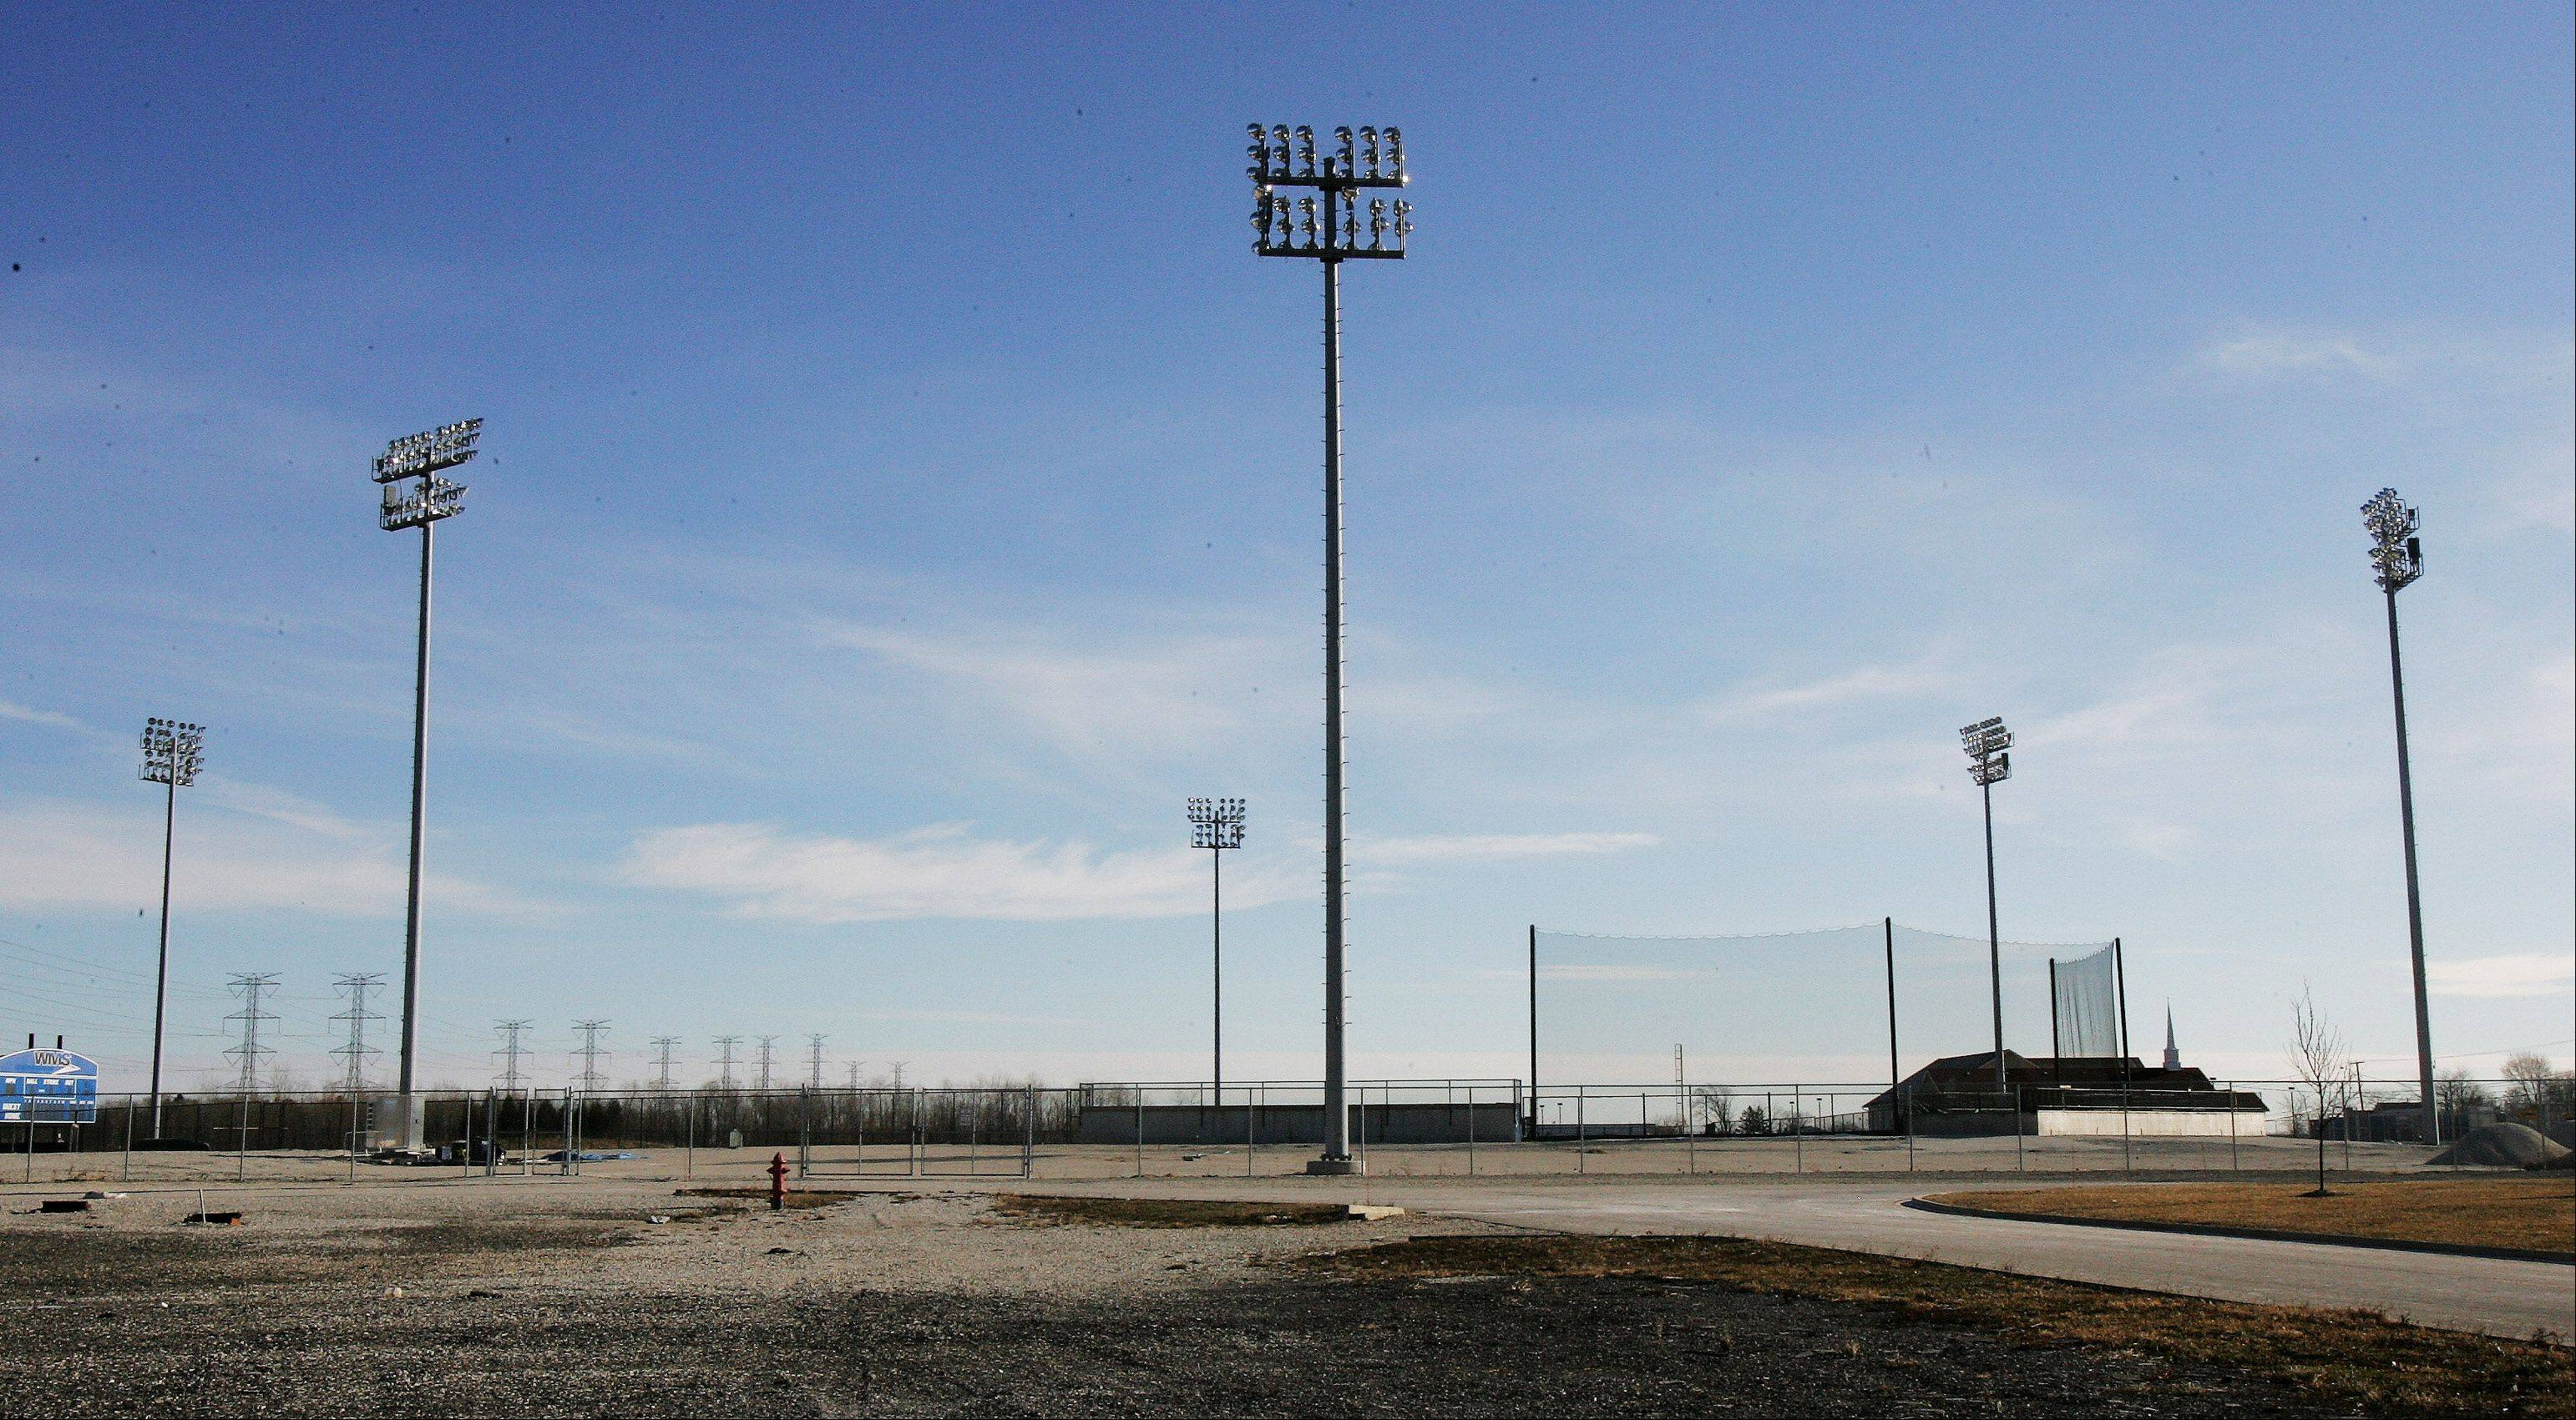 Illinois taxpayers have provided $1.3 million for lights, dugouts, a backstop, utilities and bare-bones scoreboard on private property the city of Zion rented to the Lake County Fielders in 2010 and 2011. The site is fenced and off limits to the public. A permanent stadium was supposed to be built on the land.